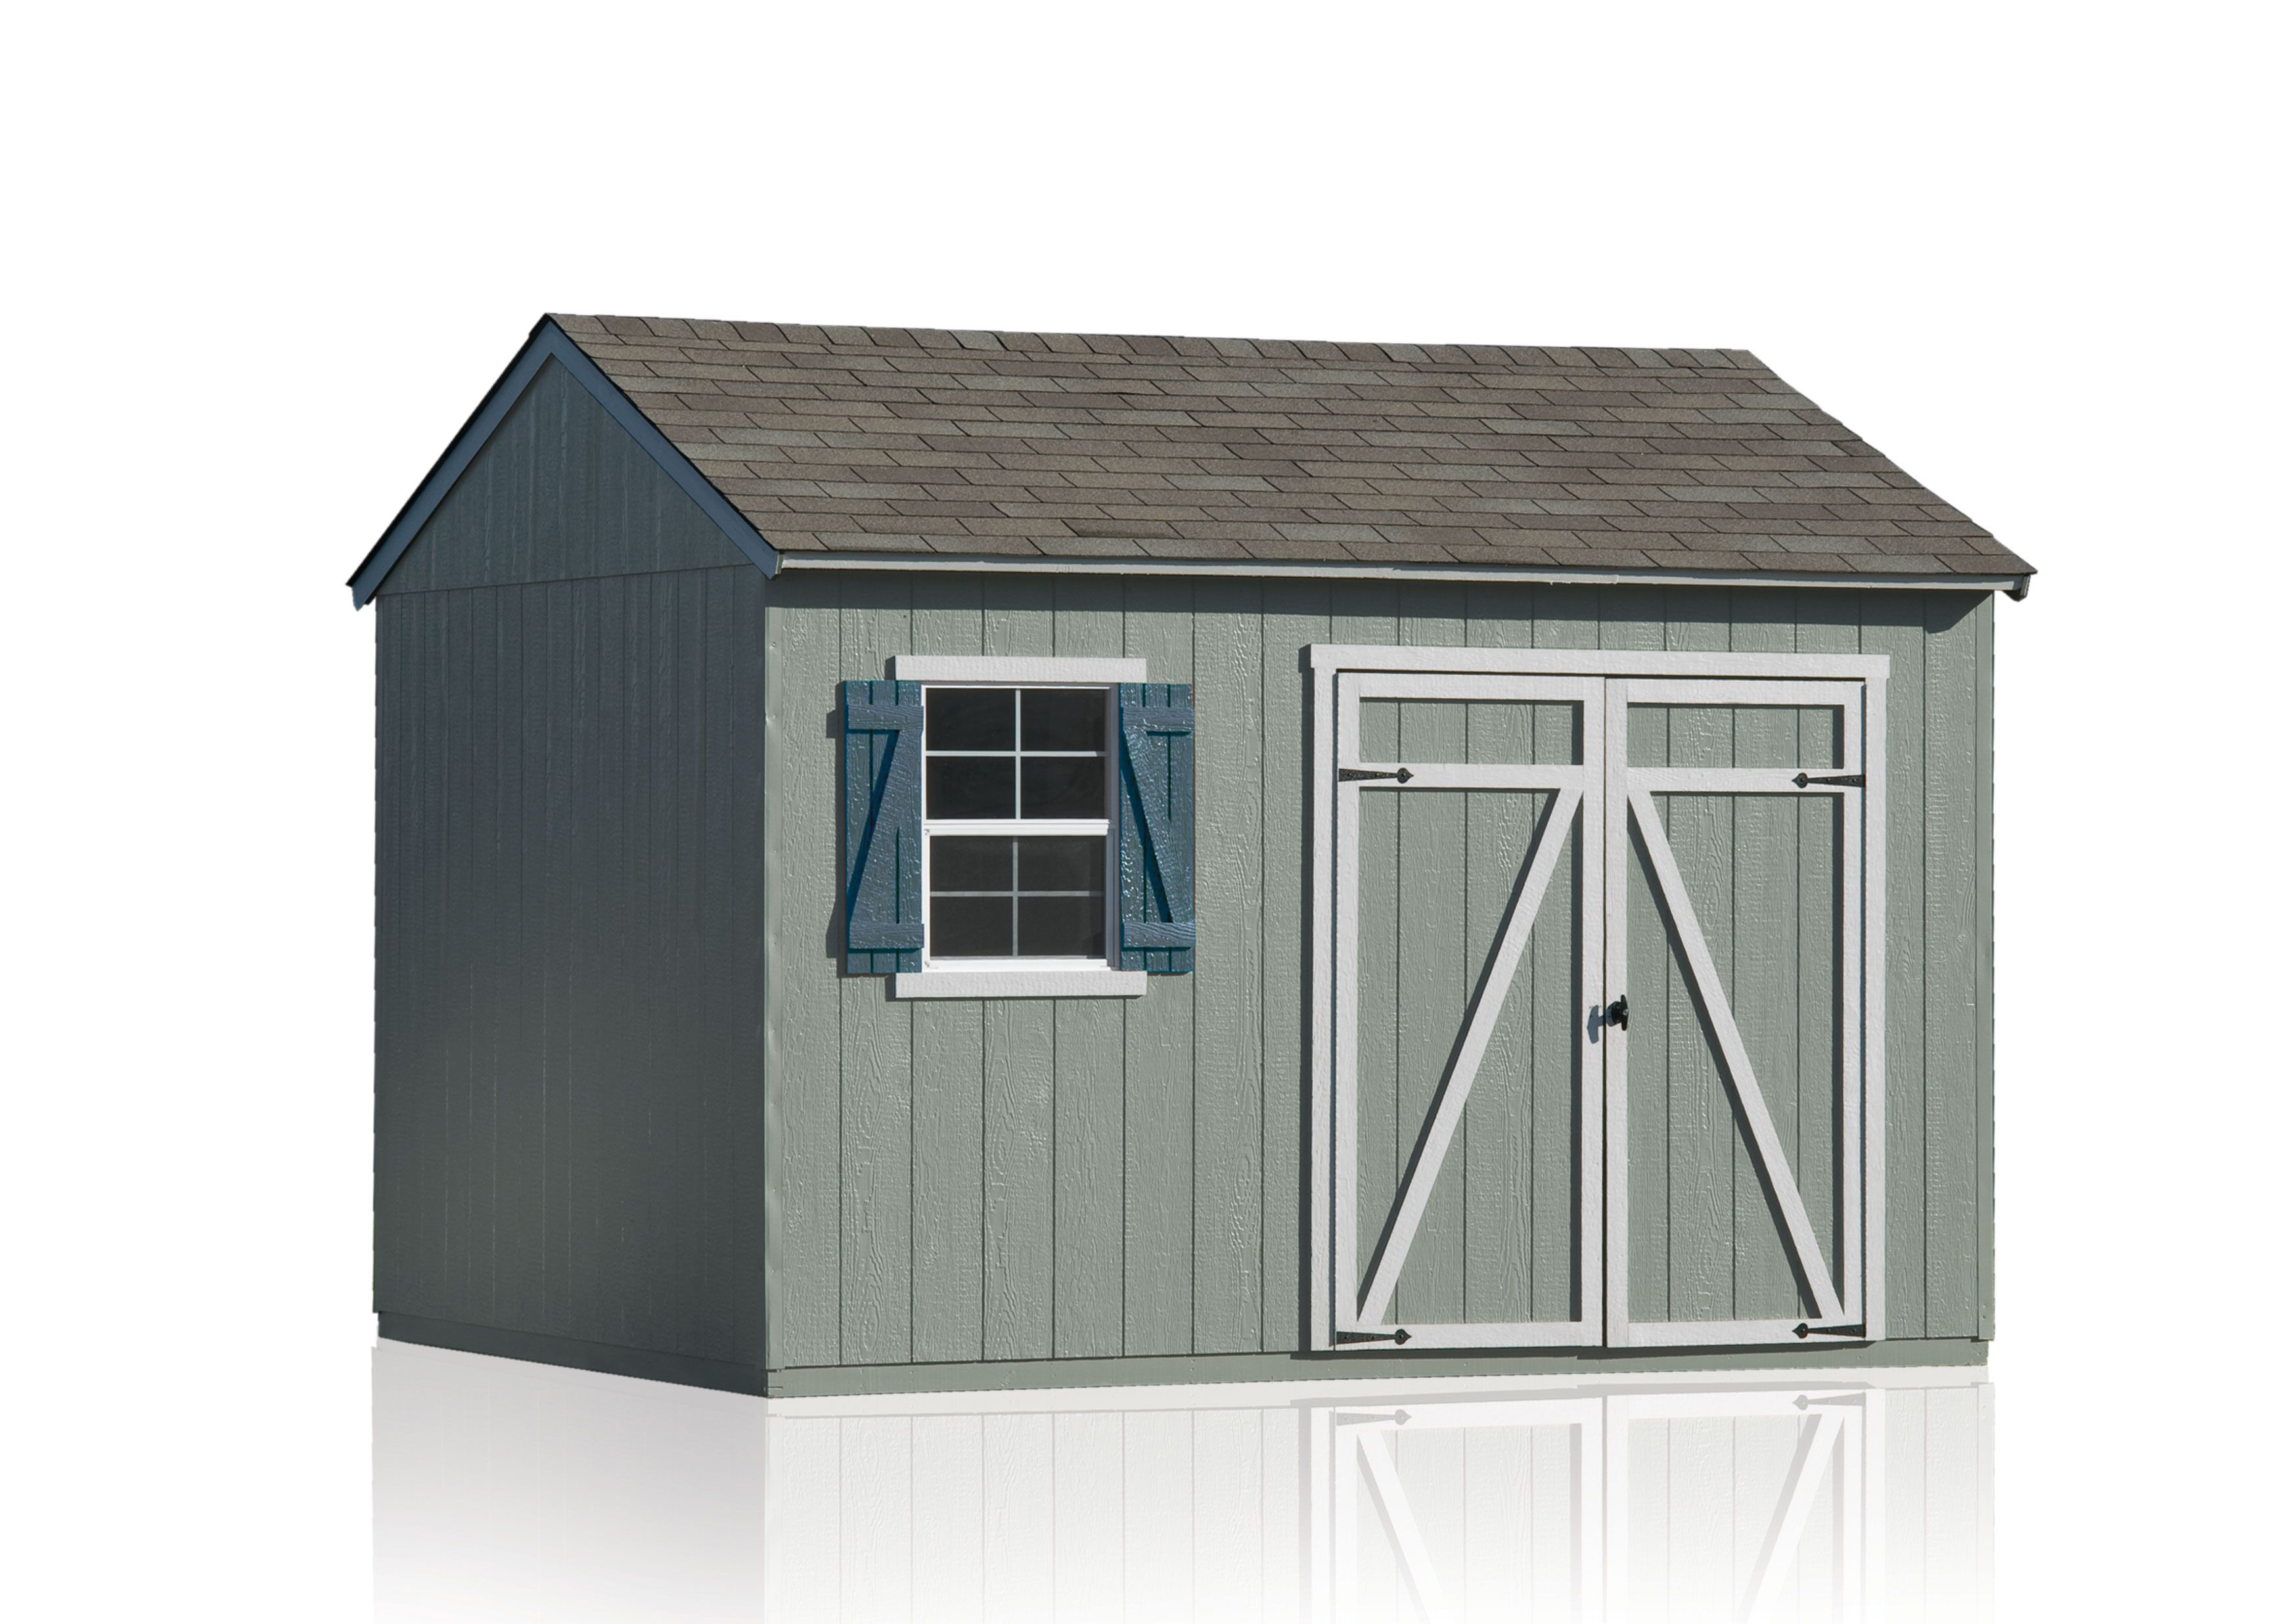 Heartland Common 12 Ft X 10 Ft Interior Dimensions 12 Ft X 10 Ft Gentry Saltbox Engineered Storage Shed Lowes Com Shed Storage Shed Wood Storage Sheds